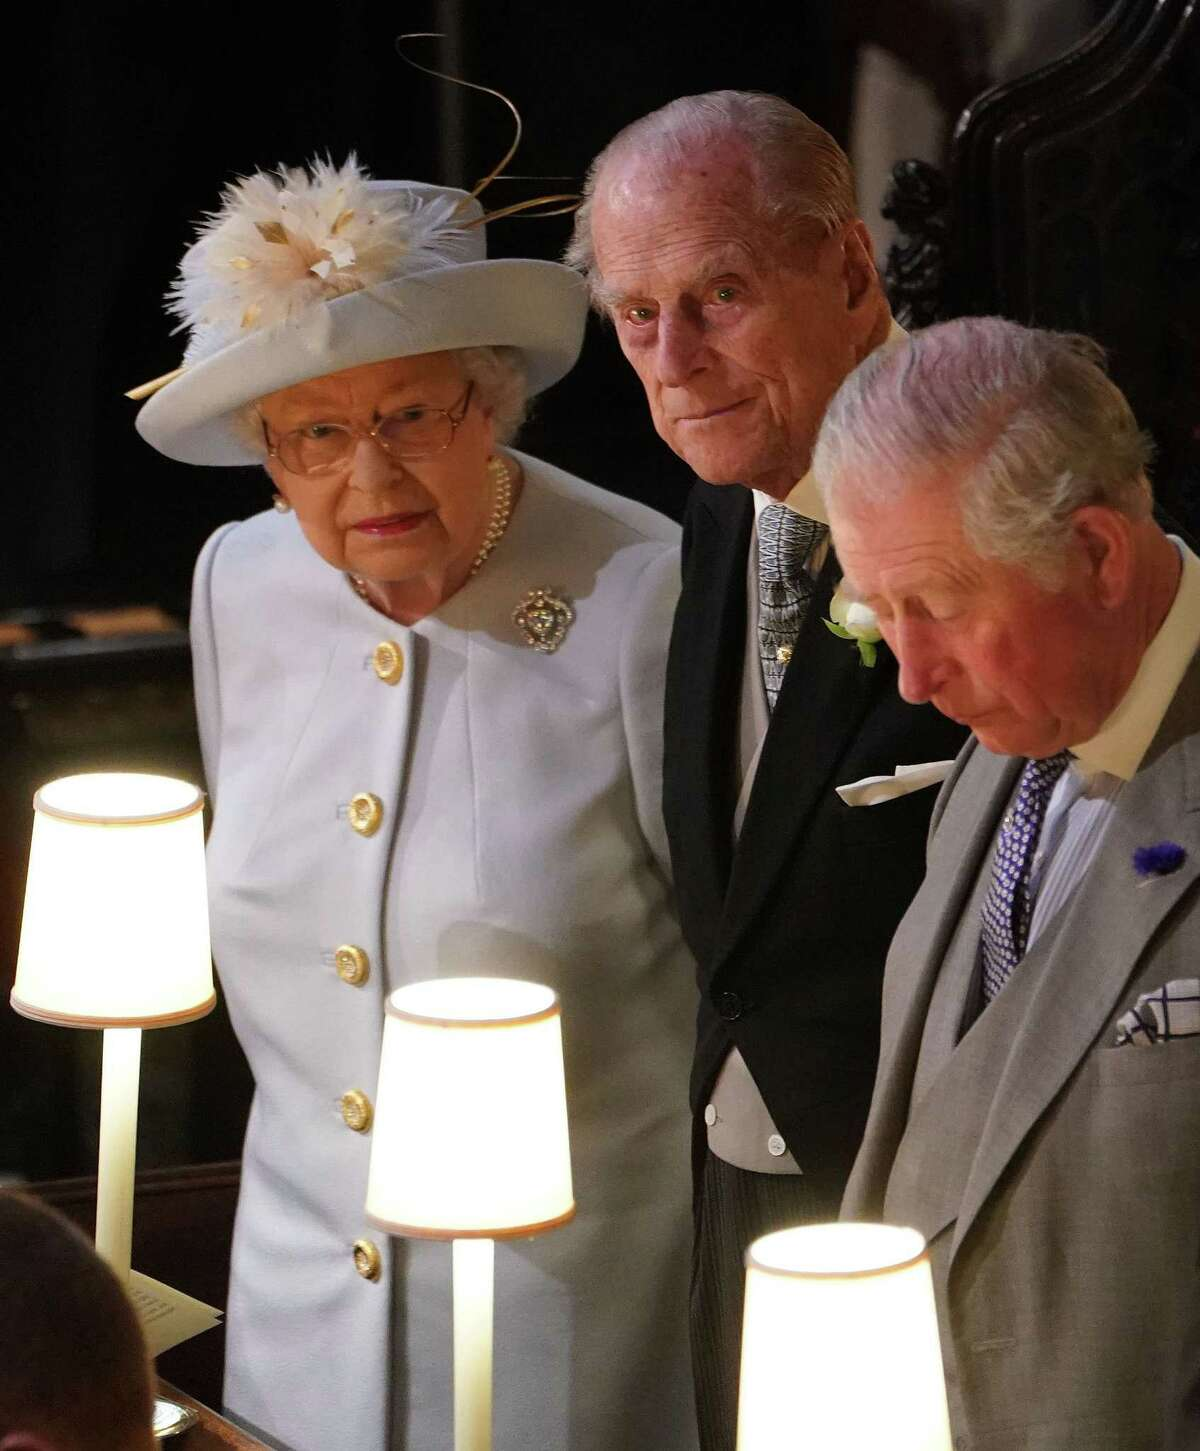 Britain's Queen Elizabeth II (L), Britain's Prince Philip, Duke of Edinburgh (C) and Britain's Prince Charles, Prince of Wales attend the wedding ceremony of Britain's Princess Eugenie of York (C) and Jack Brooksbank at St George's Chapel, Windsor Castle, in Windsor, on October 12, 2018. (Photo by Owen Humphreys / POOL / AFP)OWEN HUMPHREYS/AFP/Getty Images